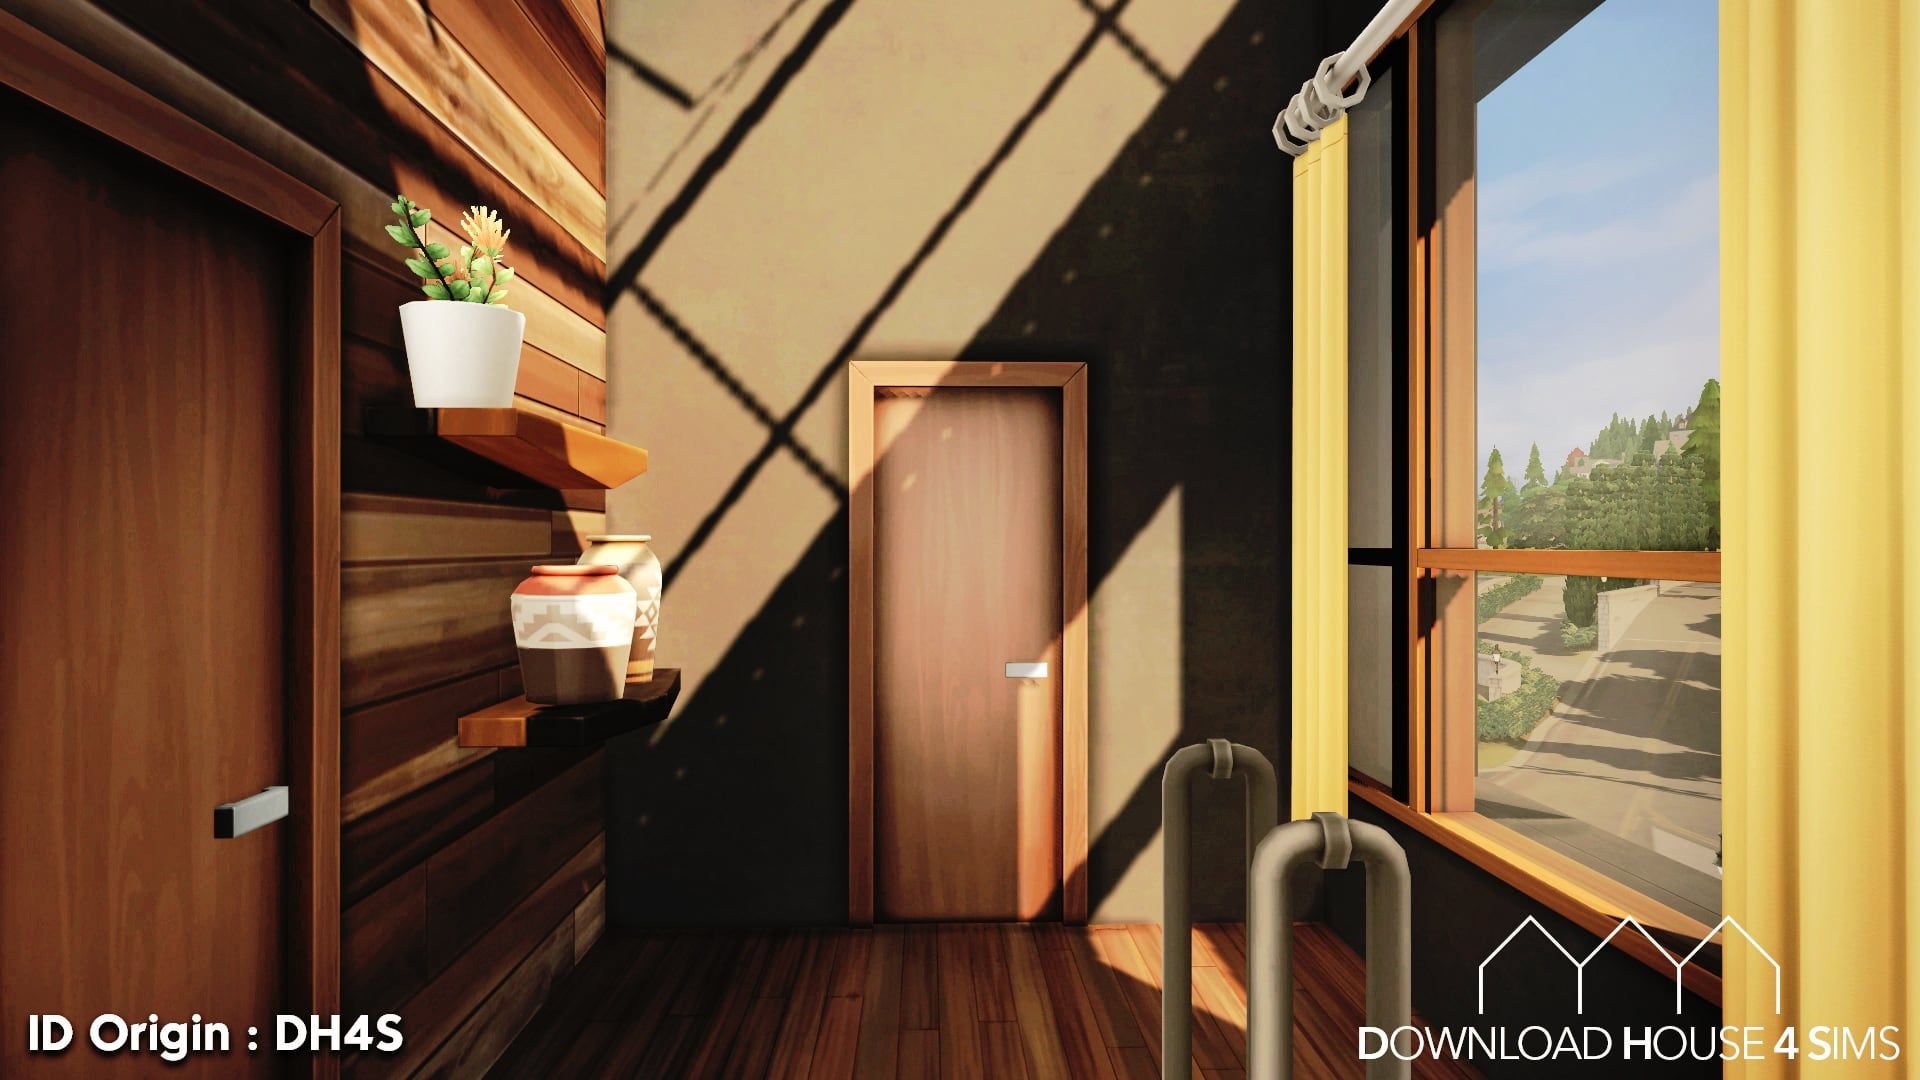 DH4S-Download-house-for-sims-dock-container-eco-house-25